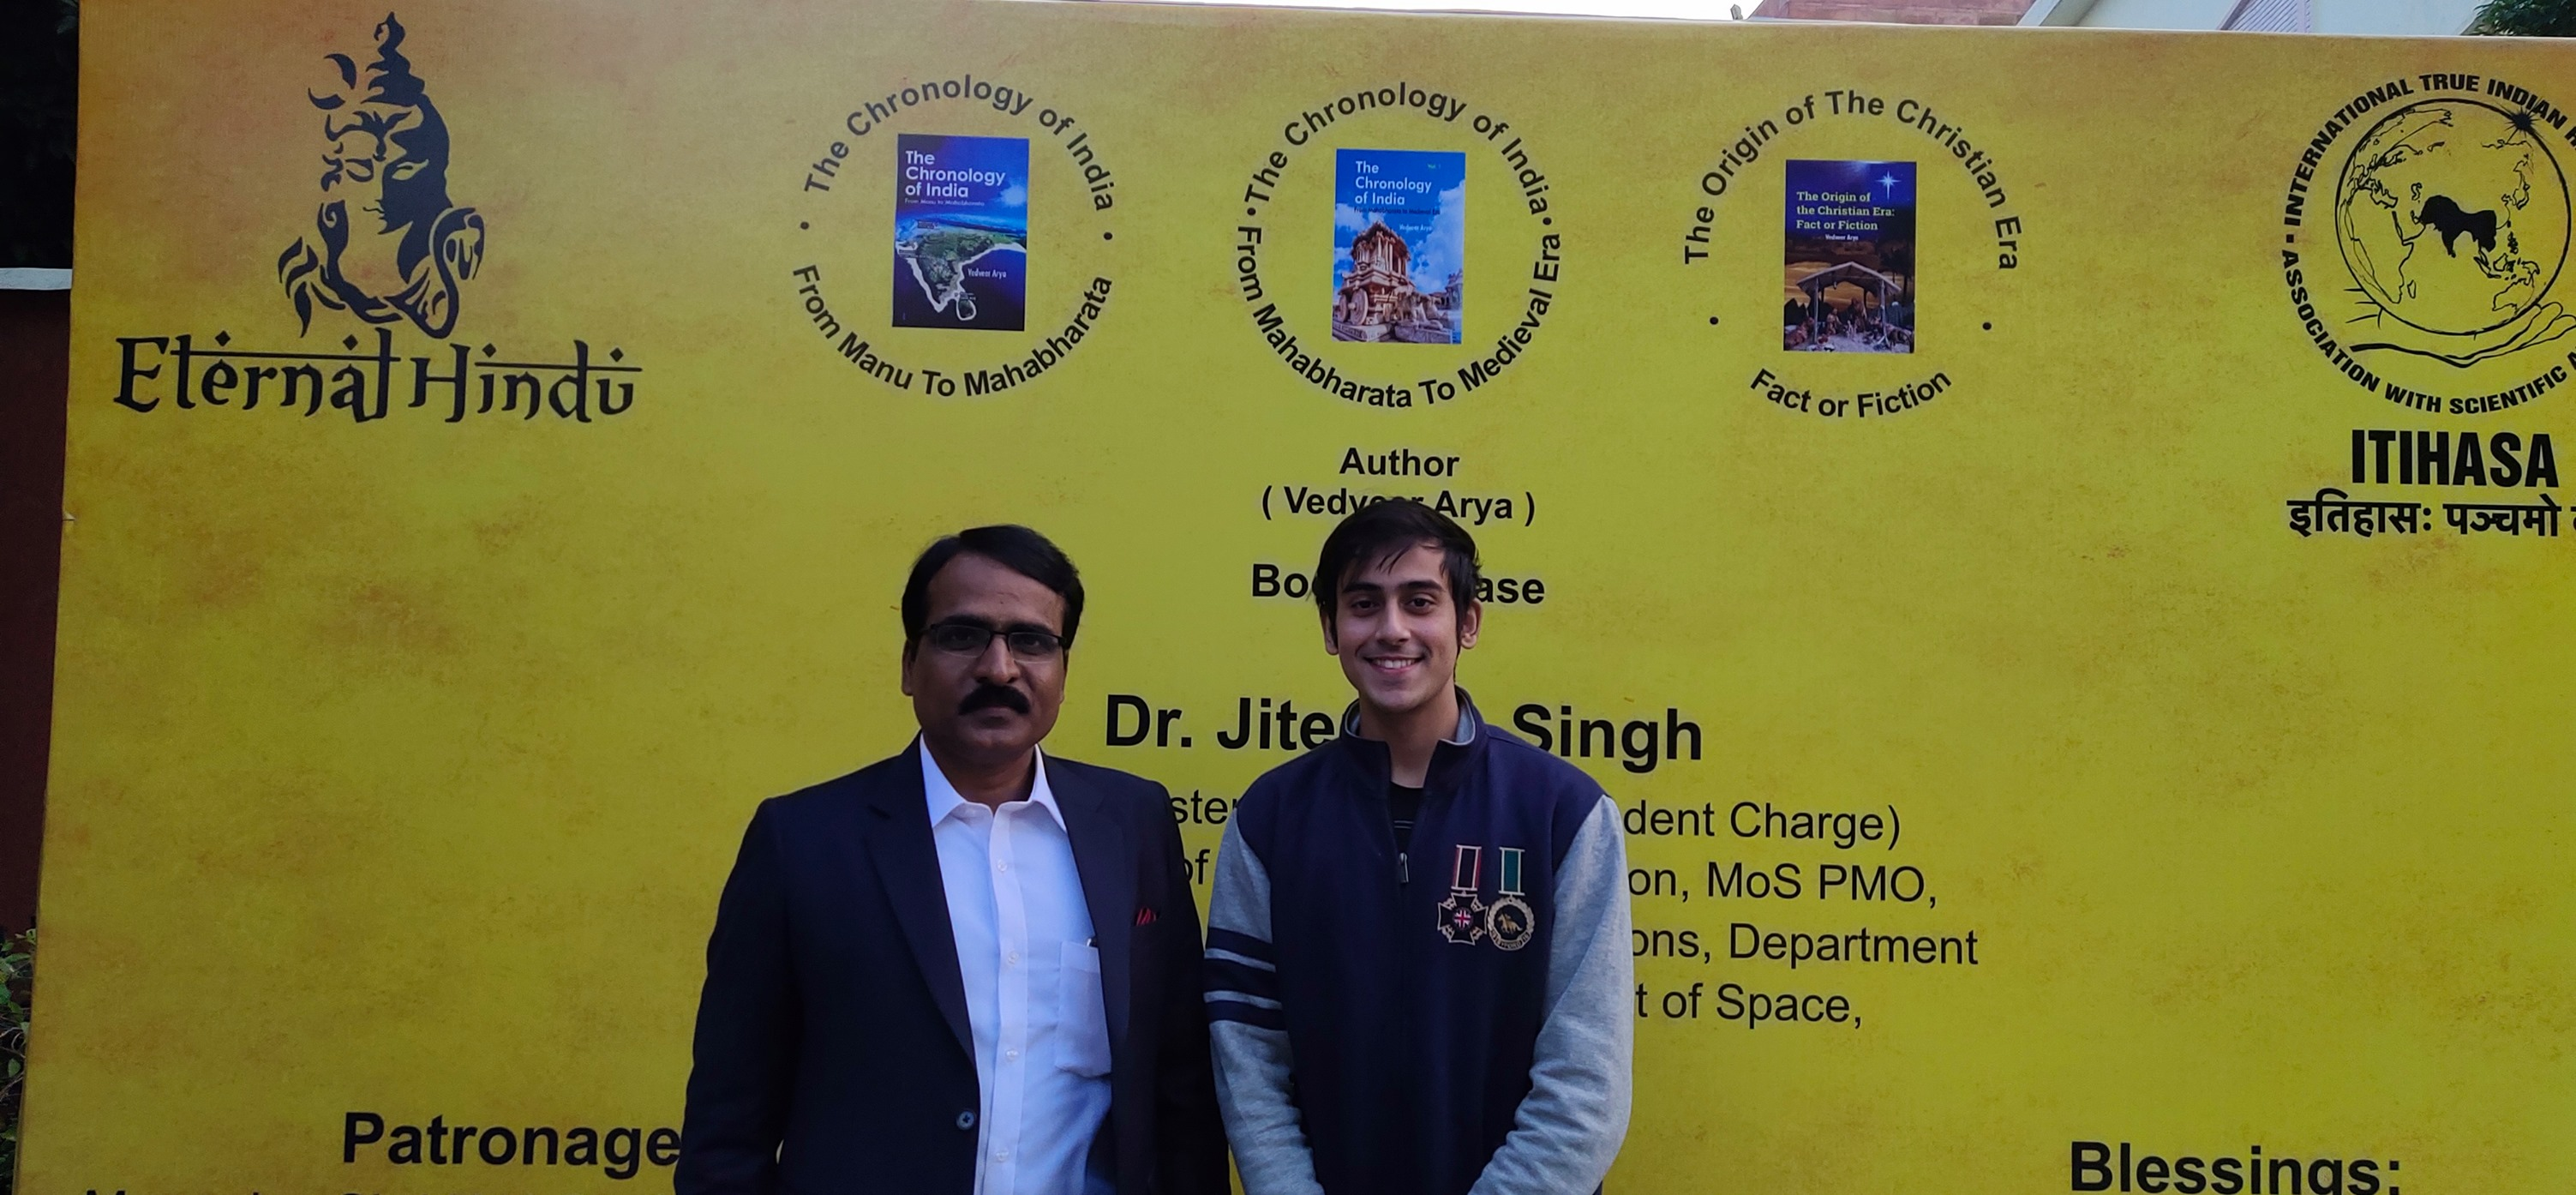 Abhinandan Kaul With Author And Indologist Ved Veer Arya At His Book Launch